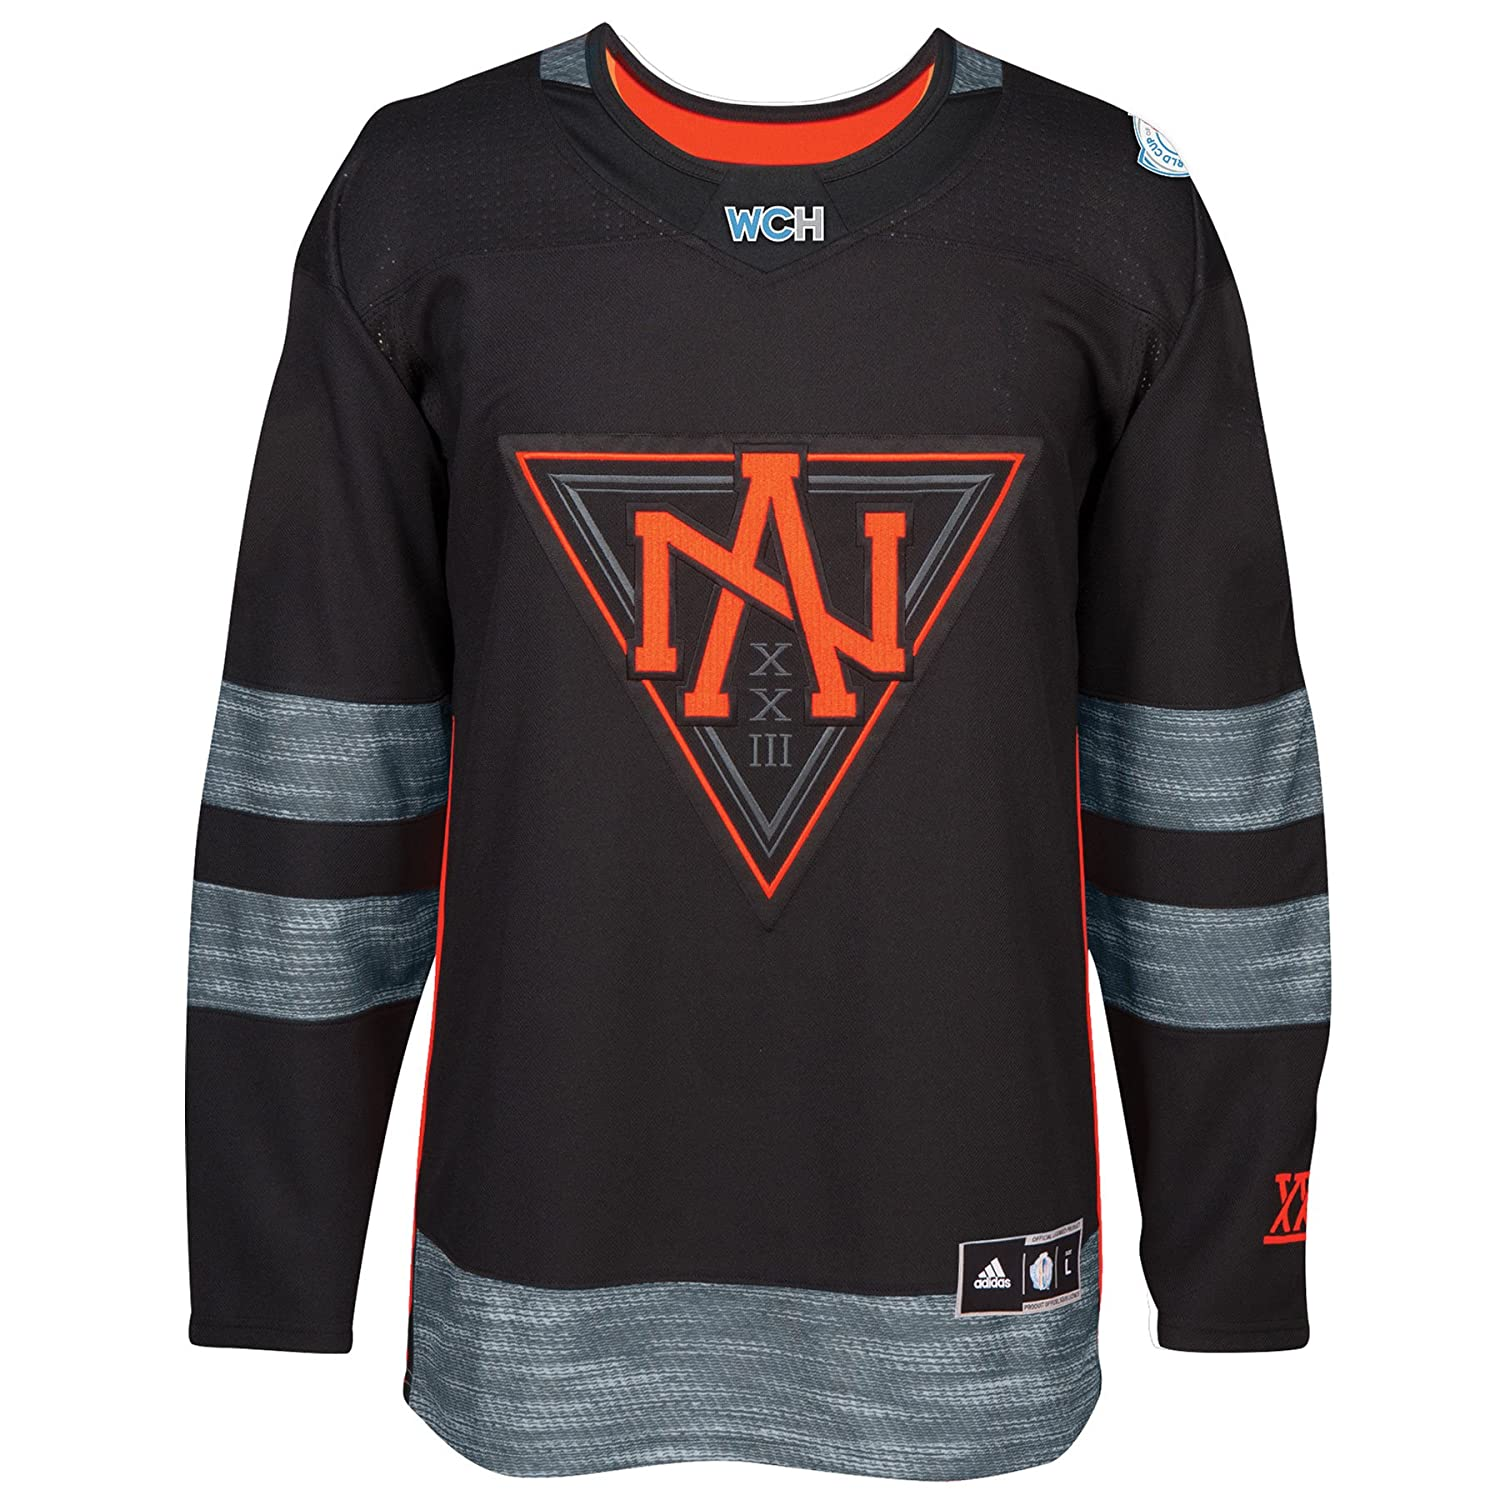 47cbabe207d0d Amazon.com : Team North America 2016 World Cup of Hockey Adidas ...